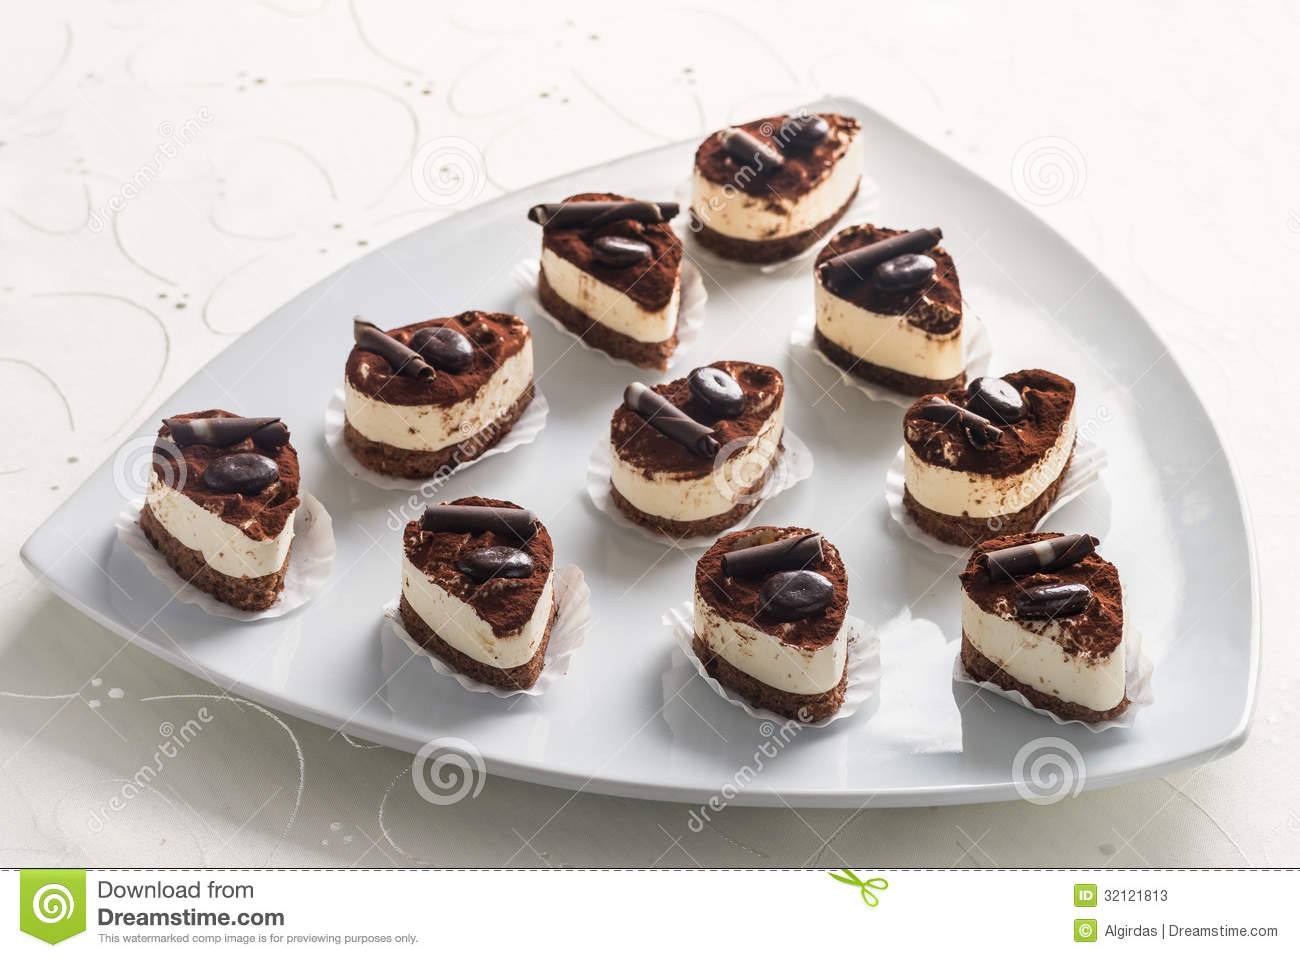 Desserts With Cocoa Powder  Desserts With Cocoa Powder And Chocolate Stock s